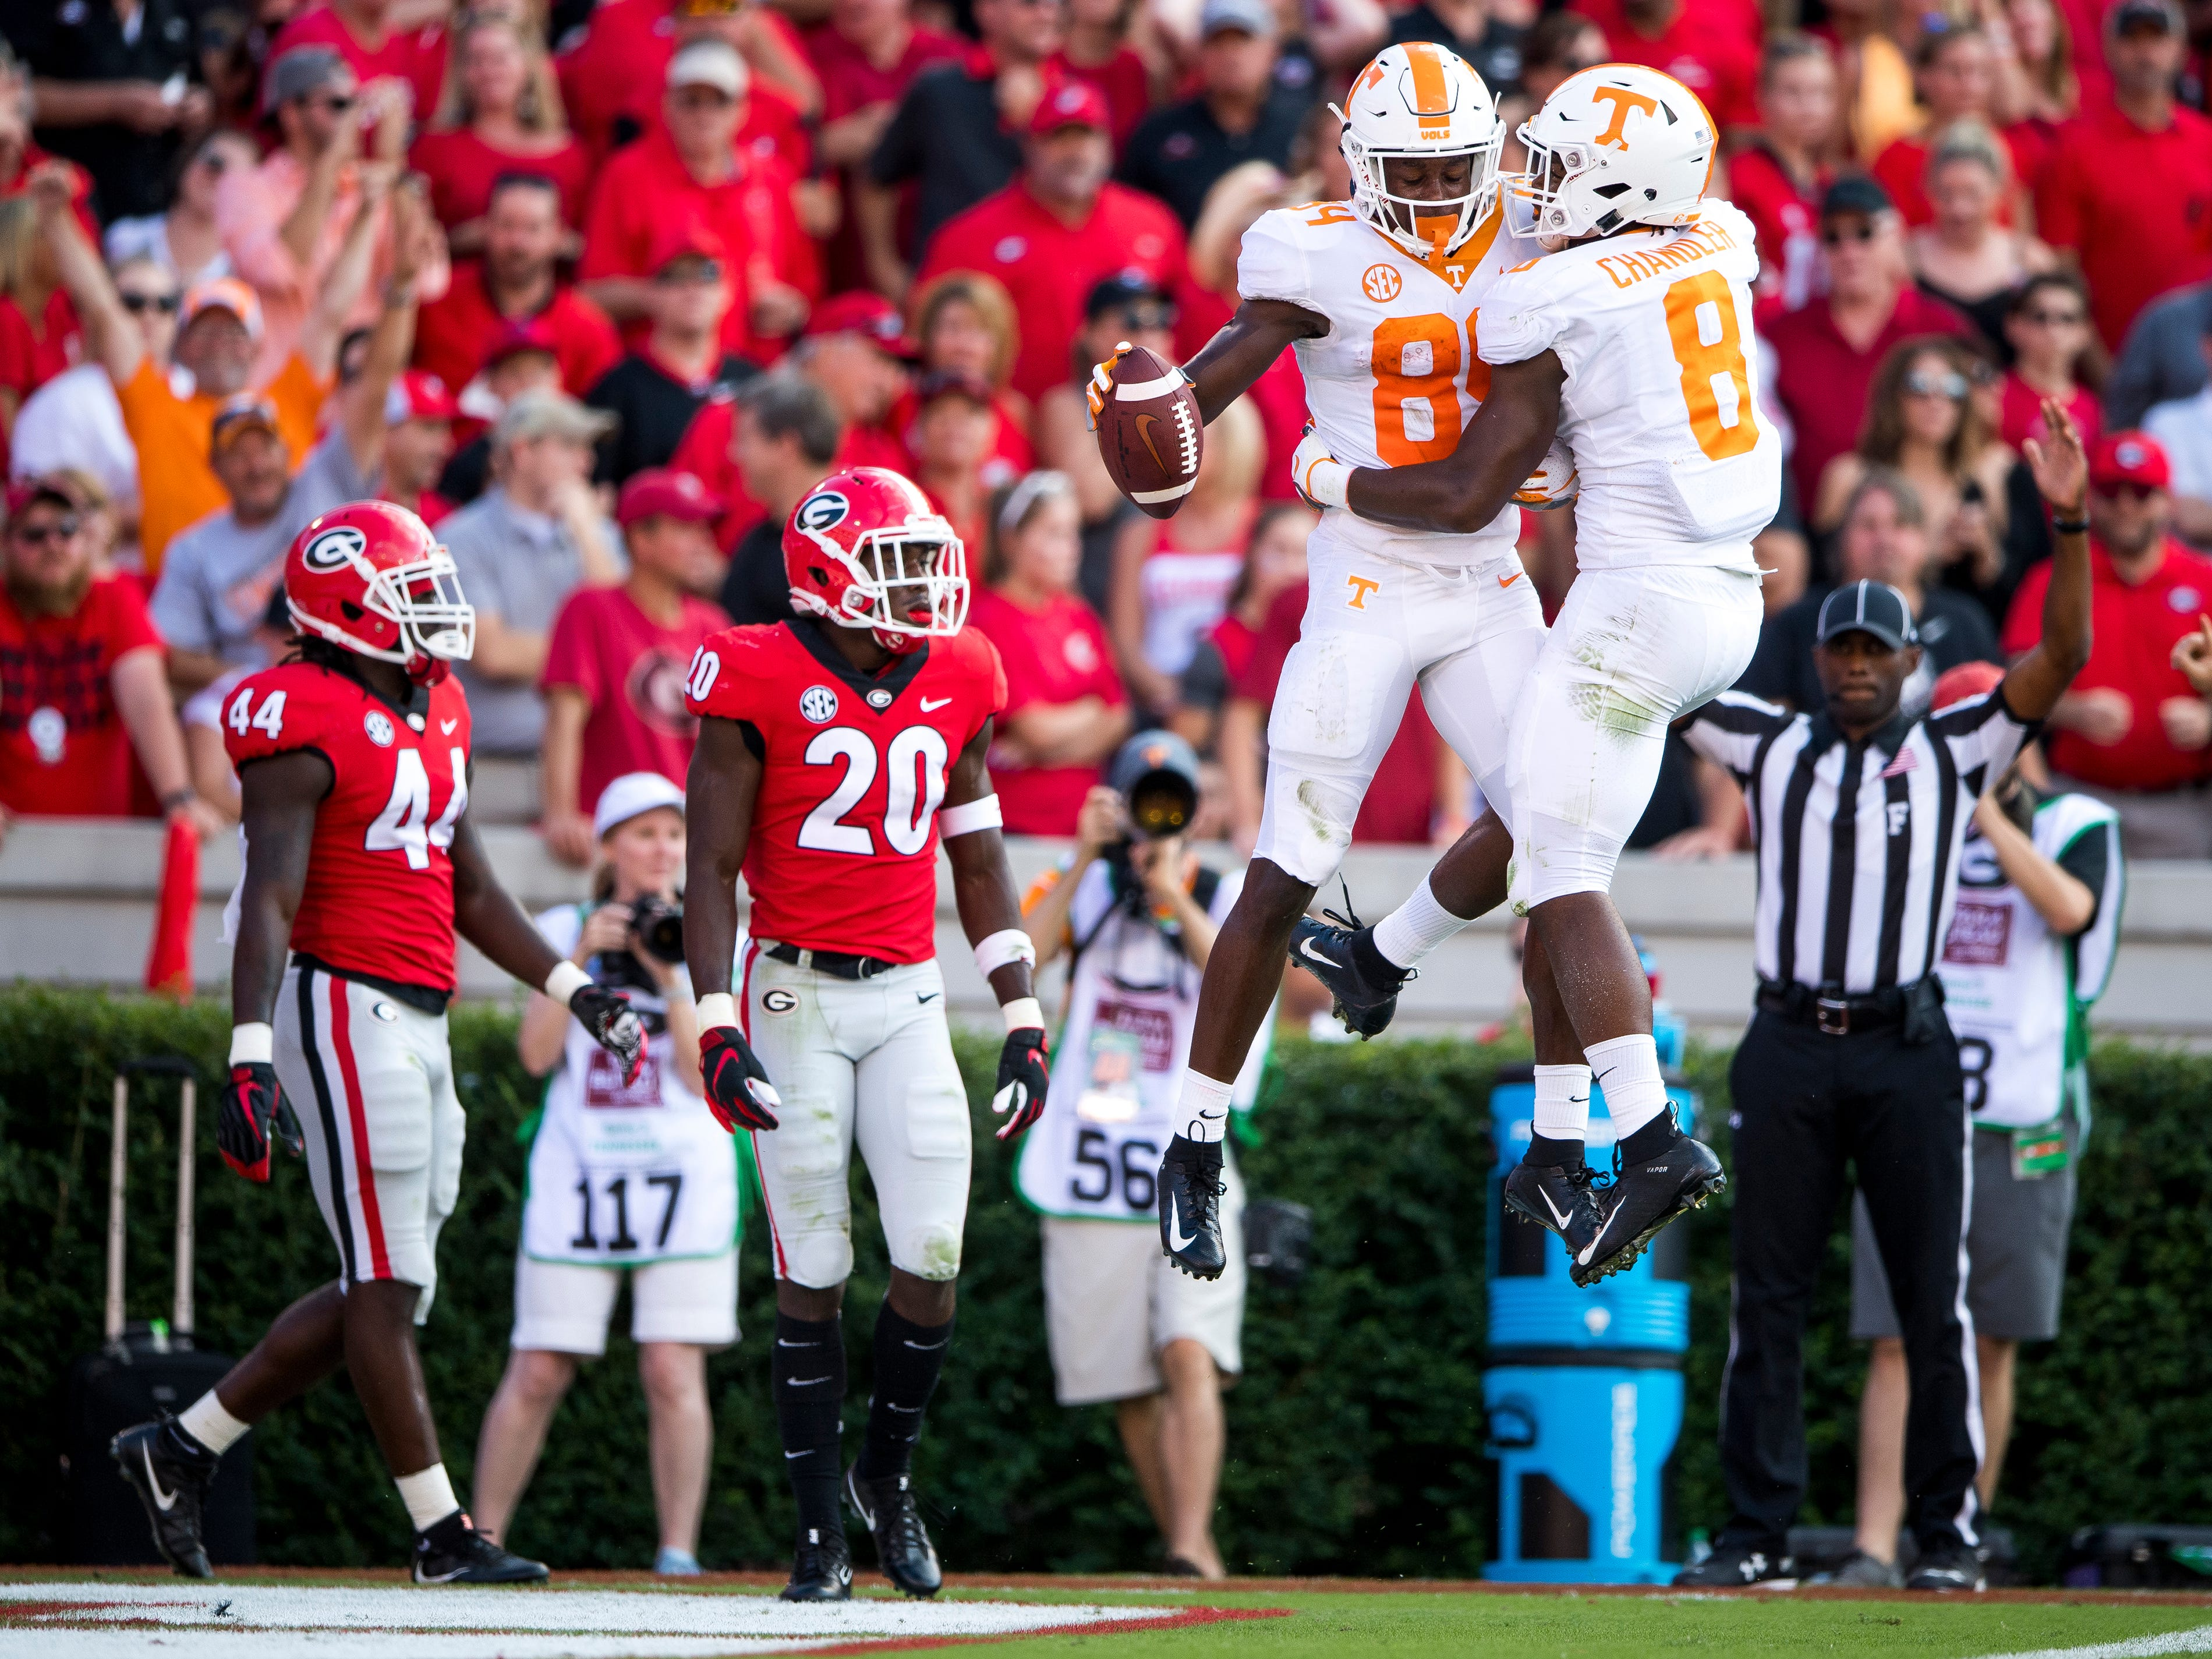 Tennessee wide receiver Josh Palmer (84) and Tennessee running back Ty Chandler (8) celebrate Palmer's touchdown during the Tennessee Volunteers' game against Georgia in Sanford Stadium in Athens, Ga., on Saturday, Sept. 29, 2018.